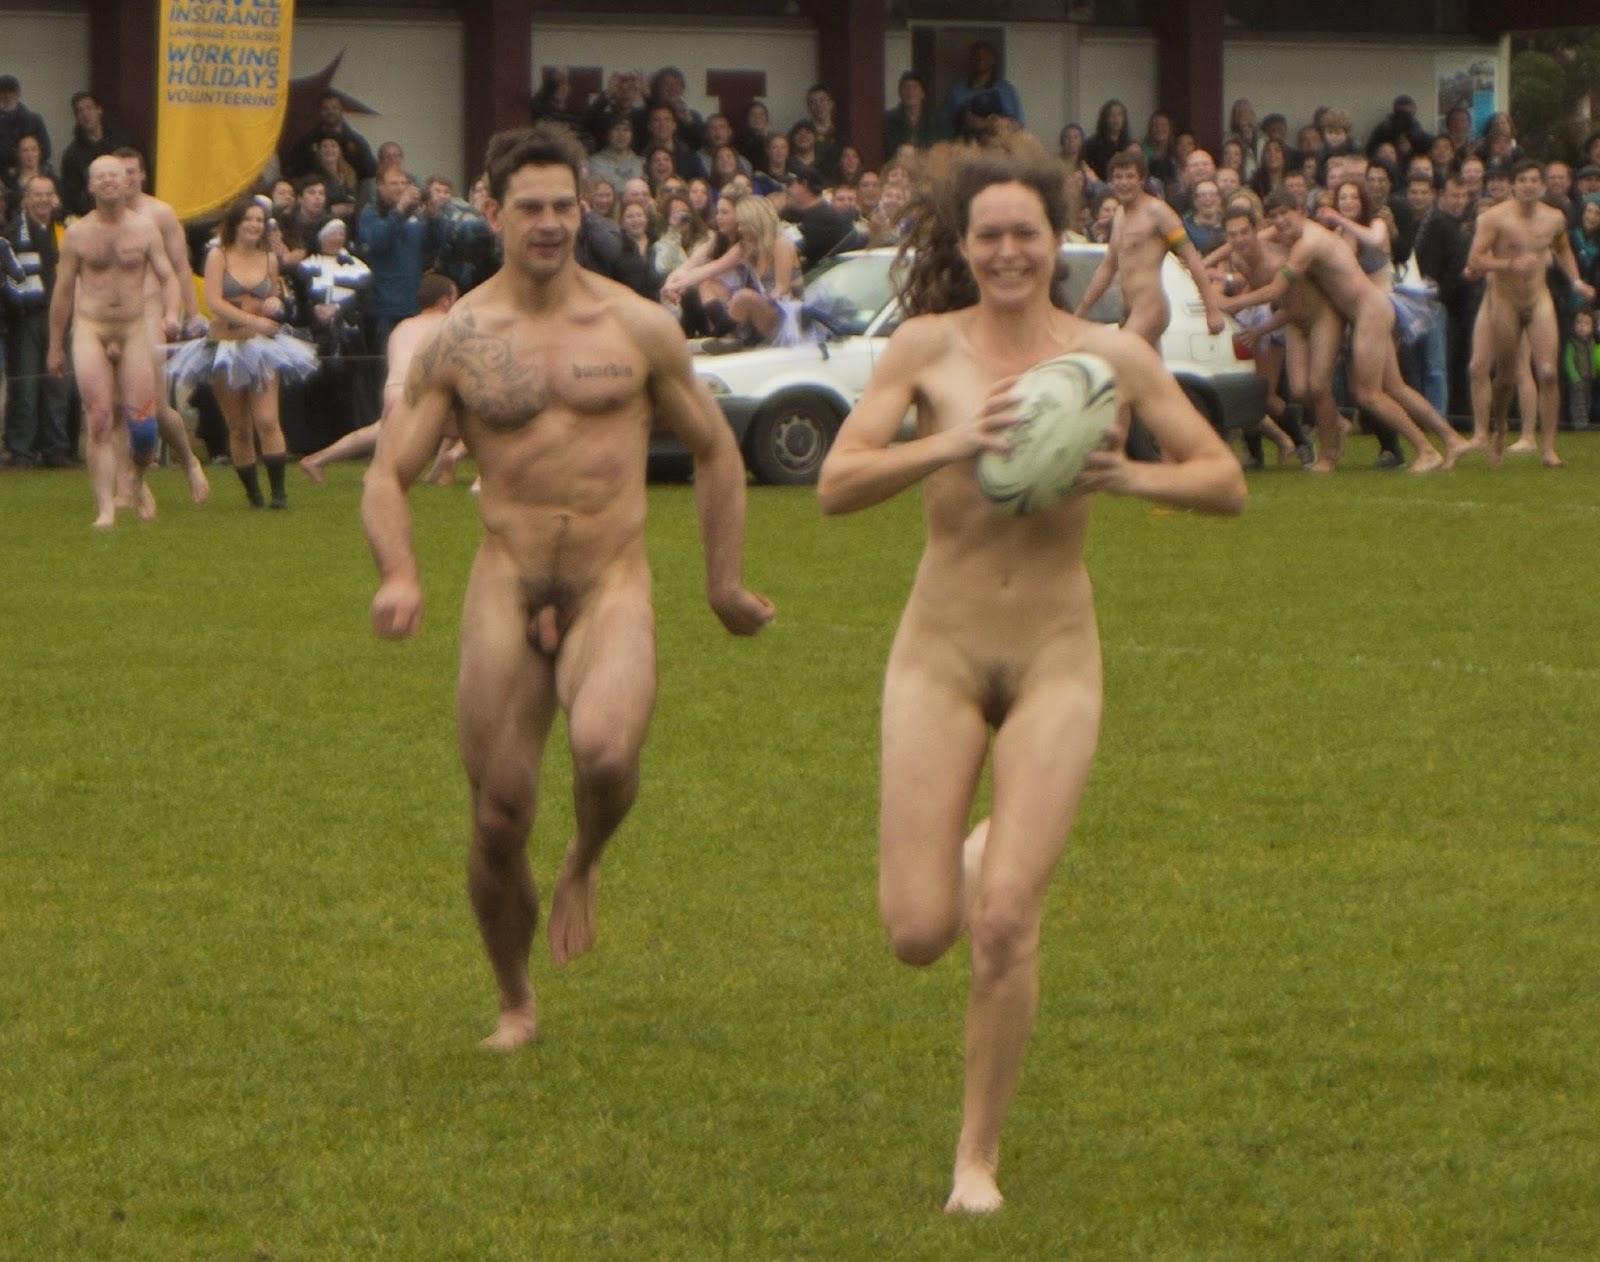 Remarkable, naked rugby player nude your idea